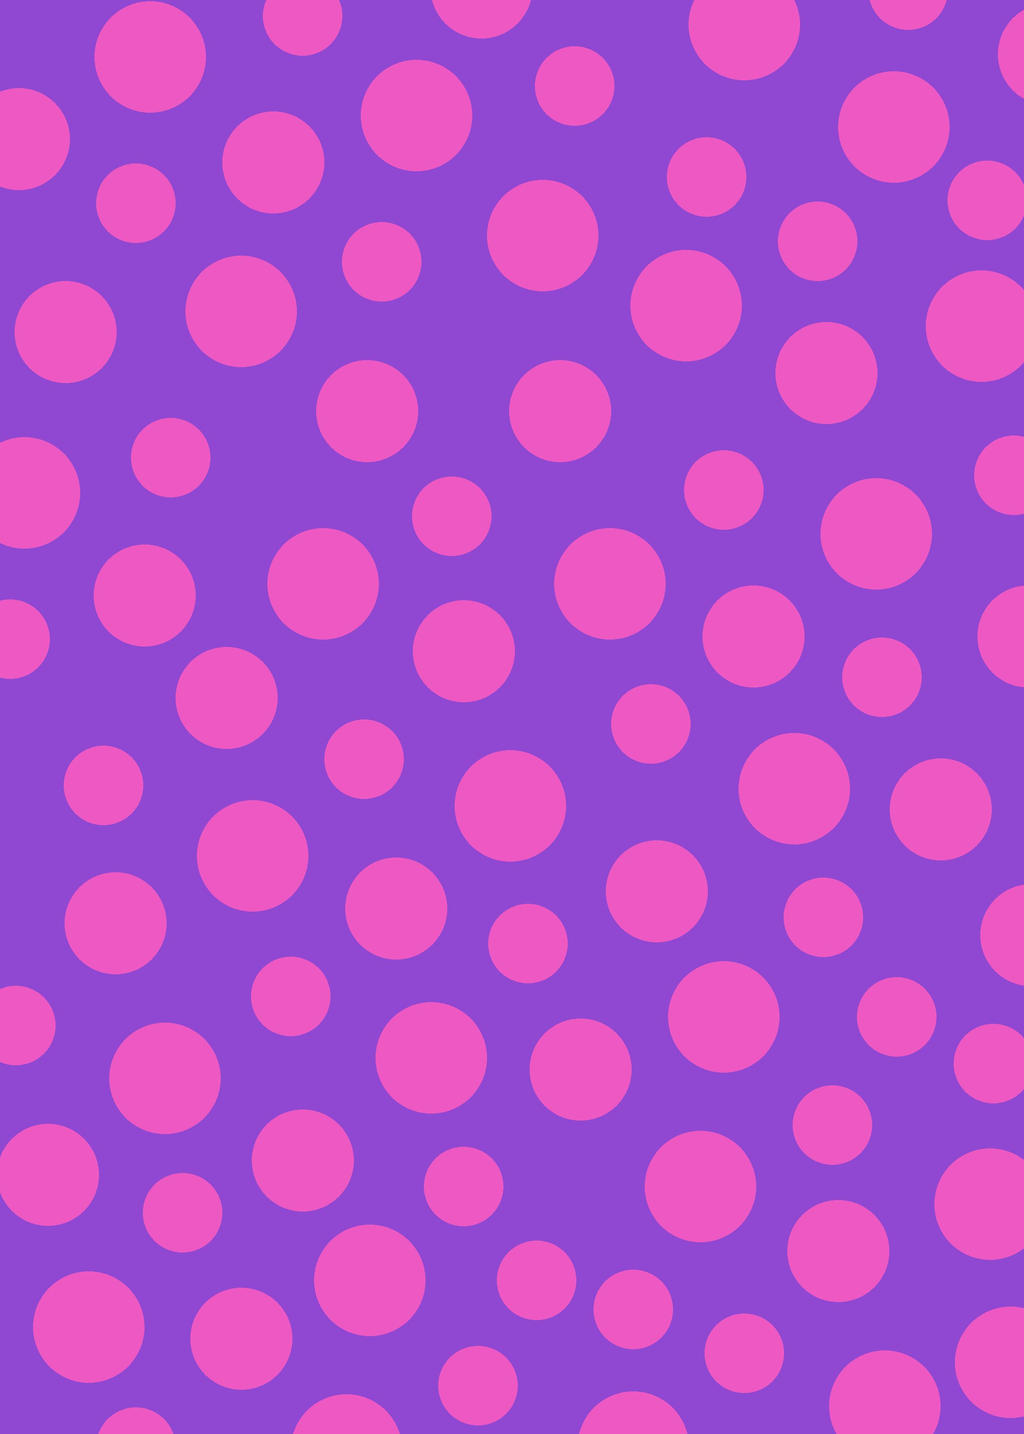 Polka dots are in crafthubs pink and purple polka dot wallpaper voltagebd Image collections